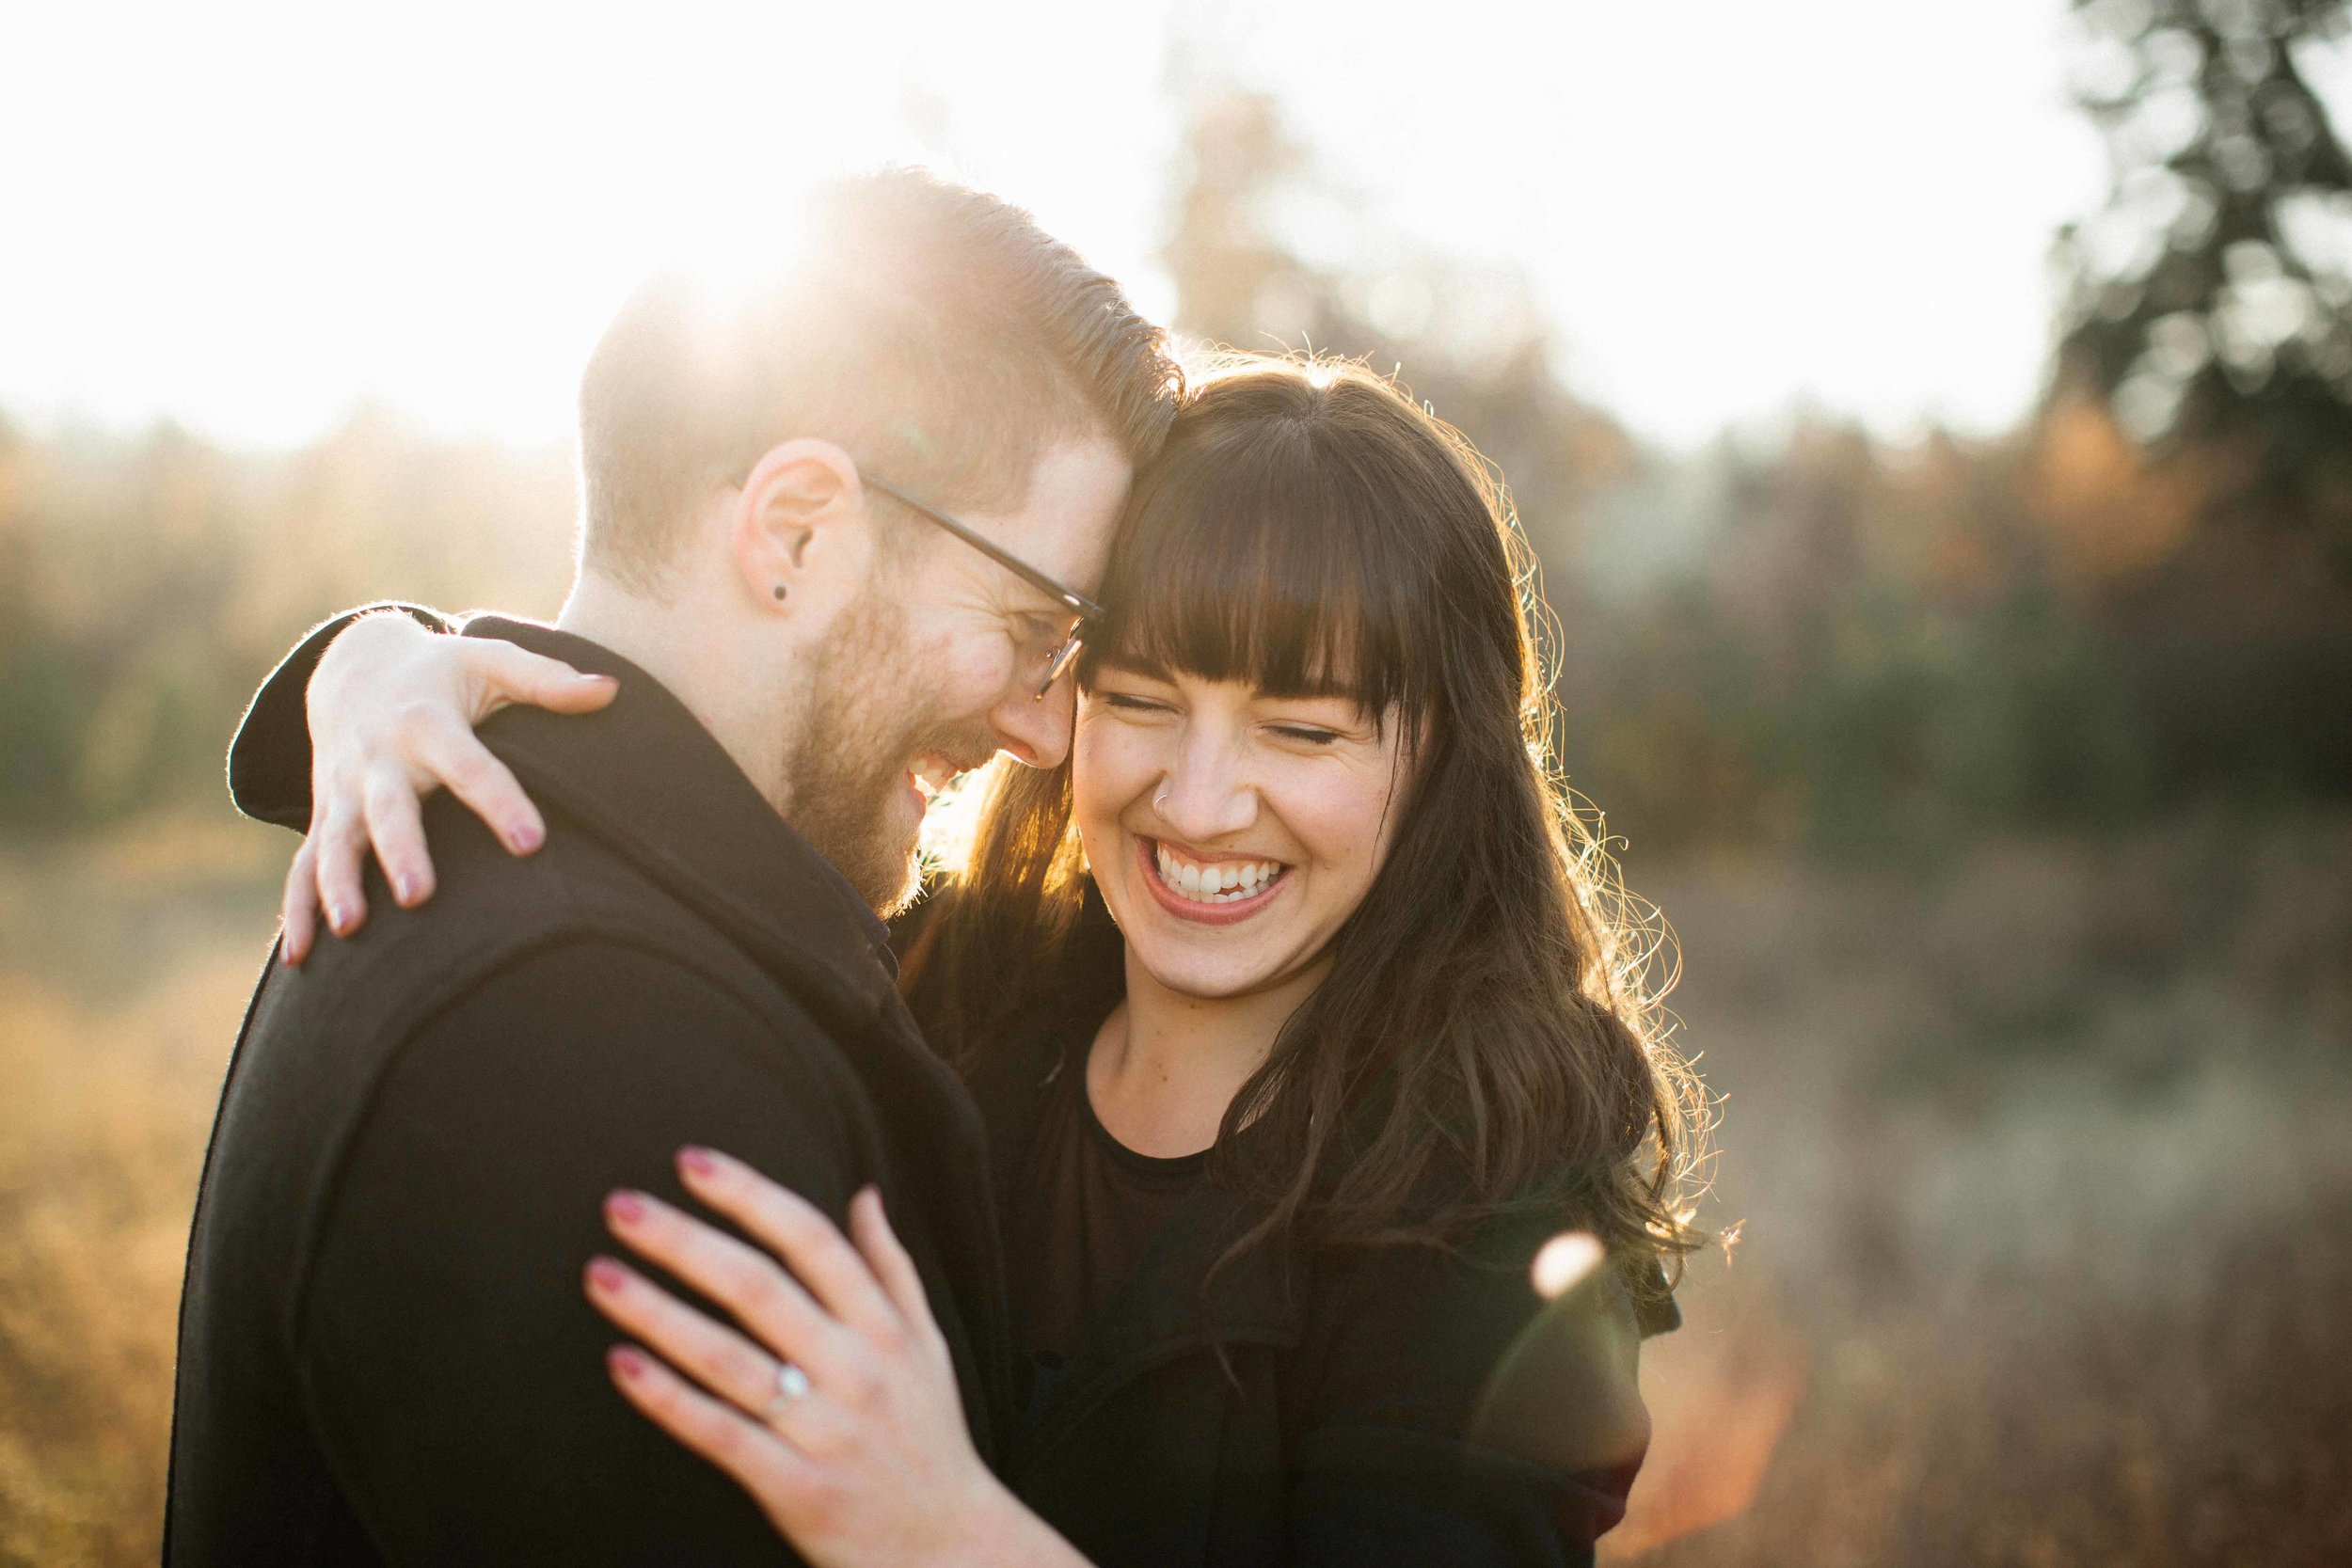 """""""She is truly talented at capturing those authentic moments of laughter and love. - My boyfriend and I had so much fun doing a couples shoot around Riverfront Park in Spokane! Sarah is great at making people feel comfortable in front of the camera and knew how to help us pose. All of her photos are so vibrant and beautiful and you can tell that she absolutely loves photography!"""